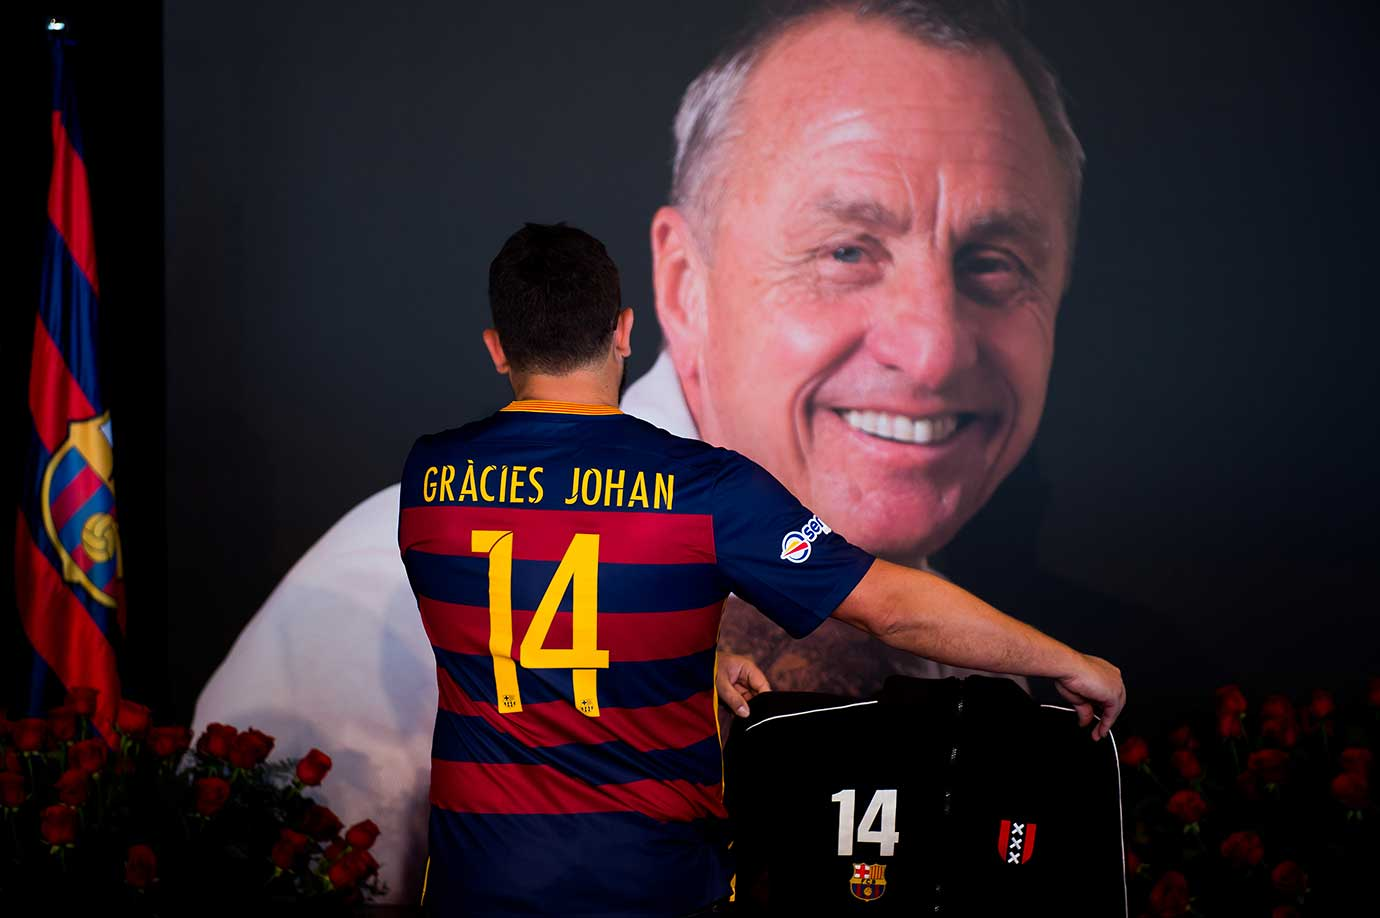 A supporter wearing a FC Barcelona shirt with a message saying 'Thanks Johan' in catalan pays tribute to late Dutch football star Johan Cruyff in a special condolence area set up at Camp Nou stadium in Barcelona, Spain.